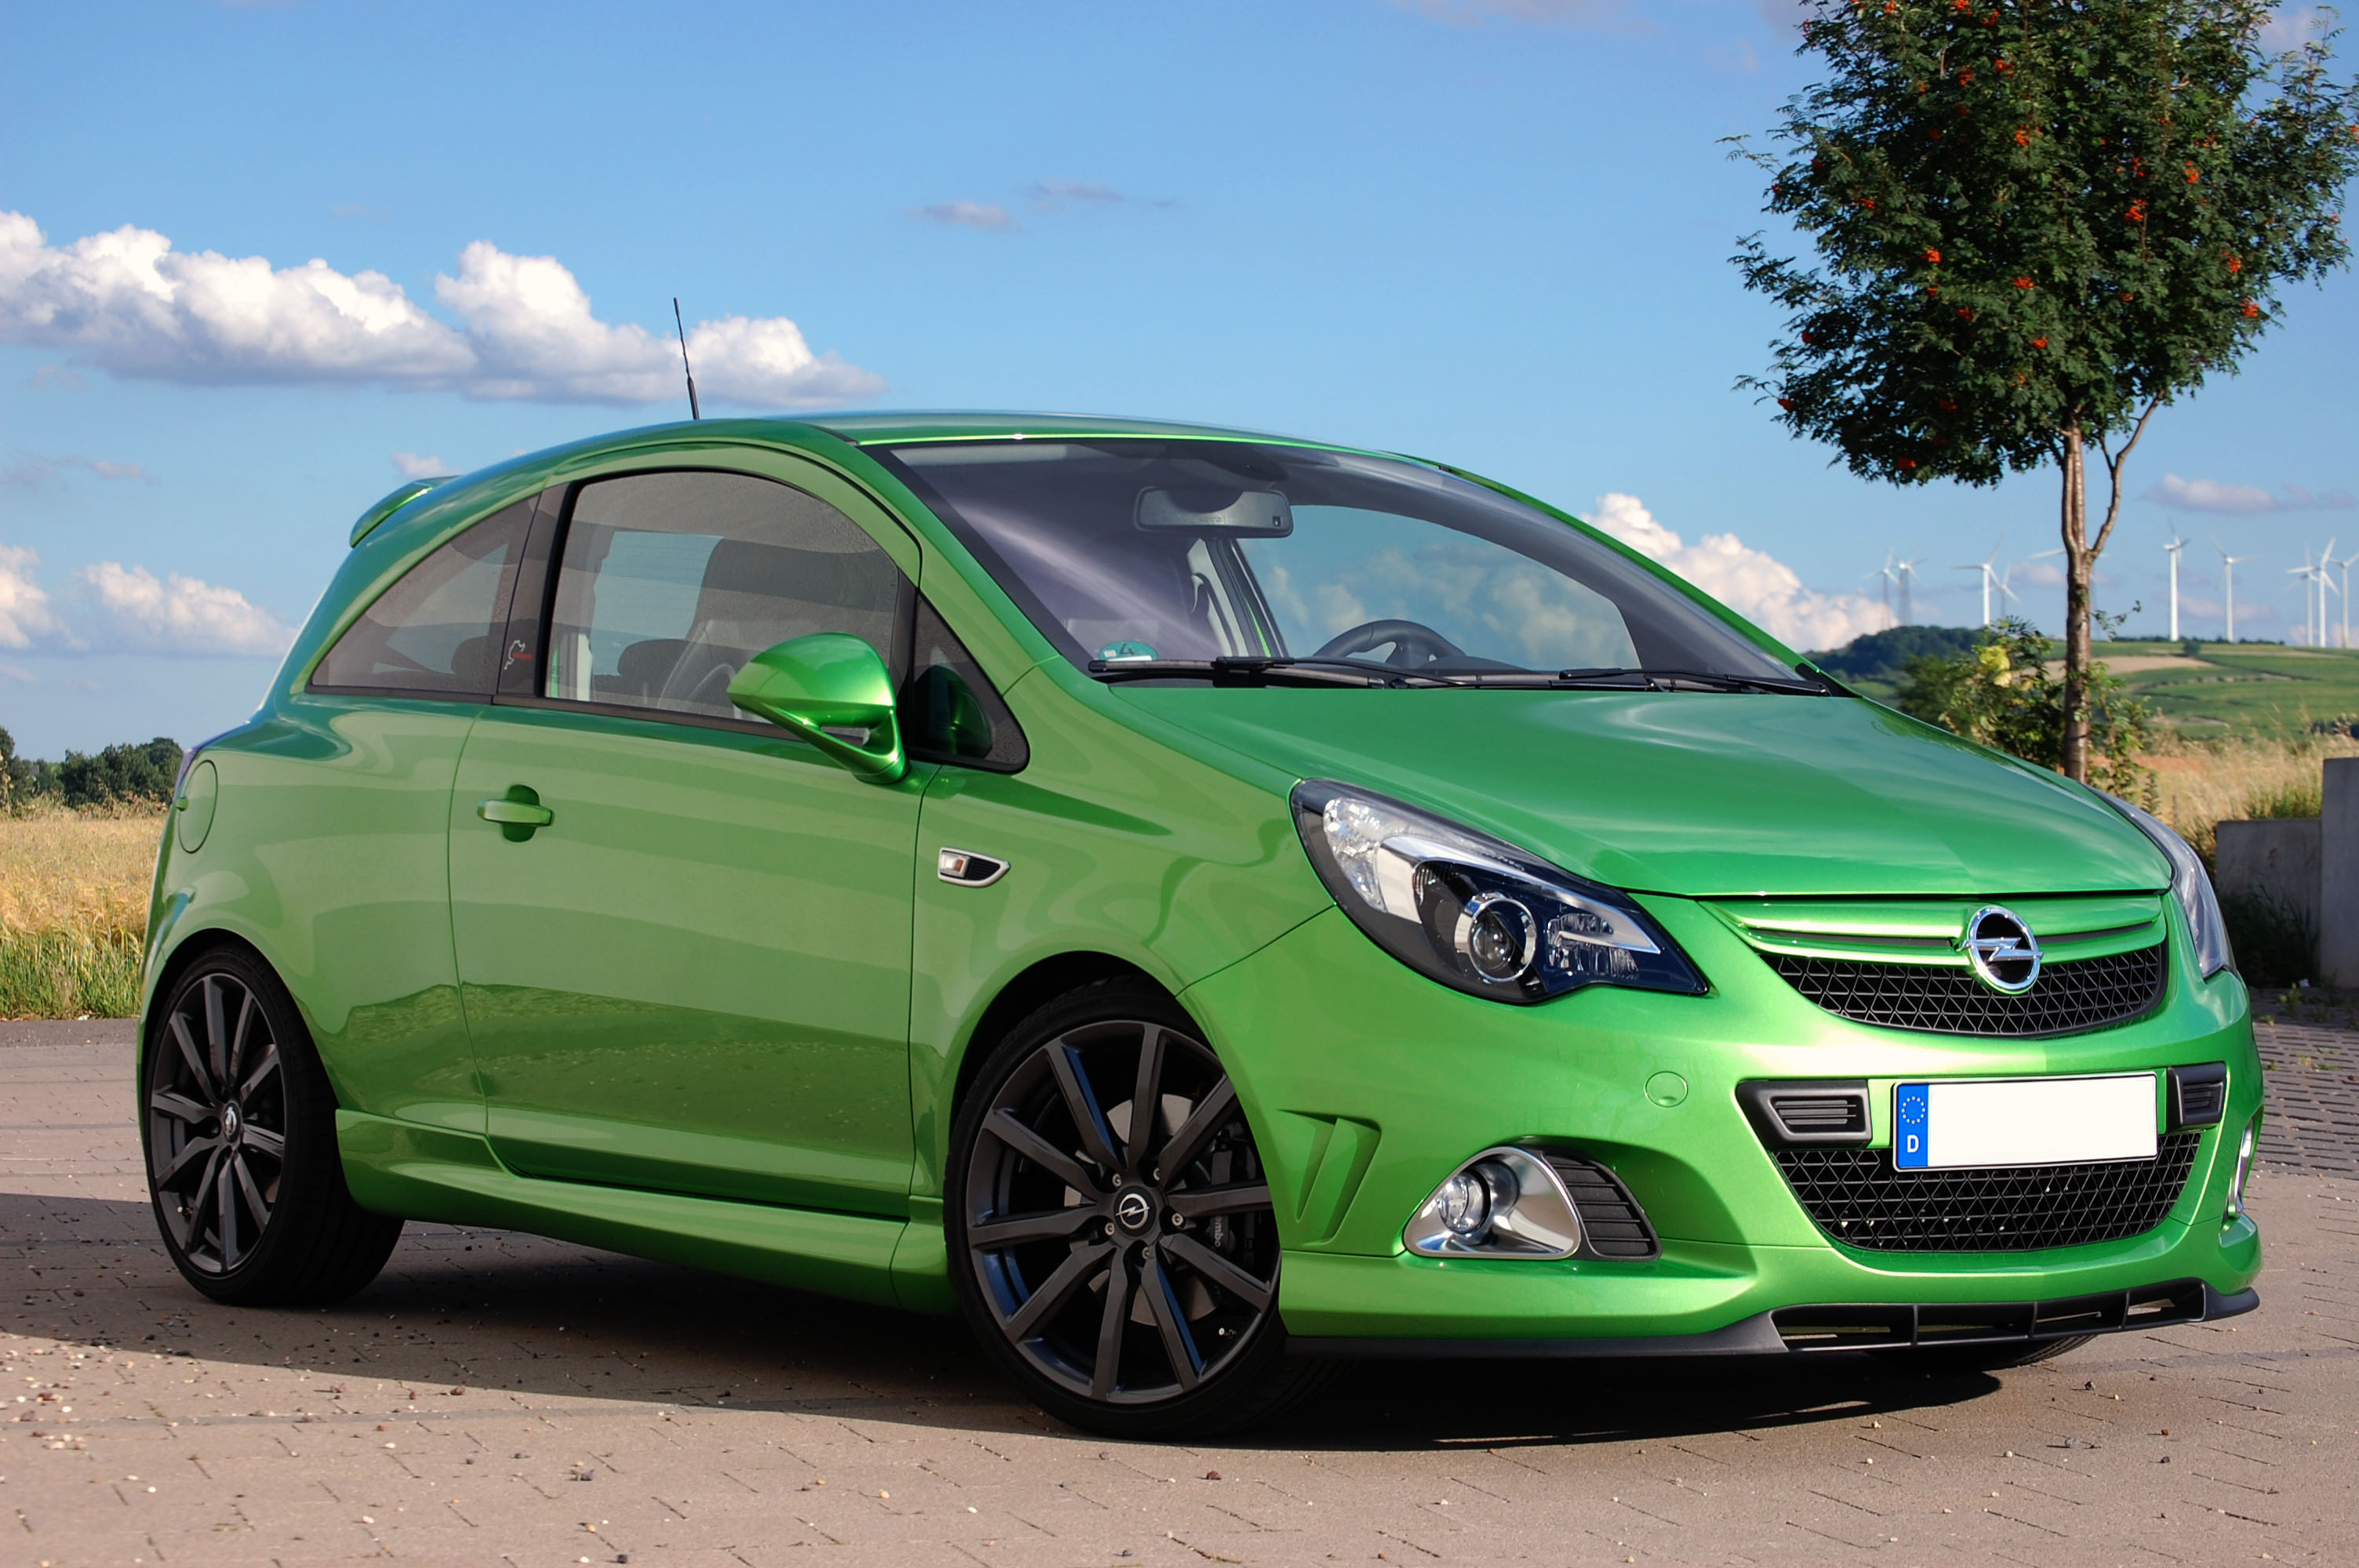 opel corsa opc nurburgring edition wiki. Black Bedroom Furniture Sets. Home Design Ideas